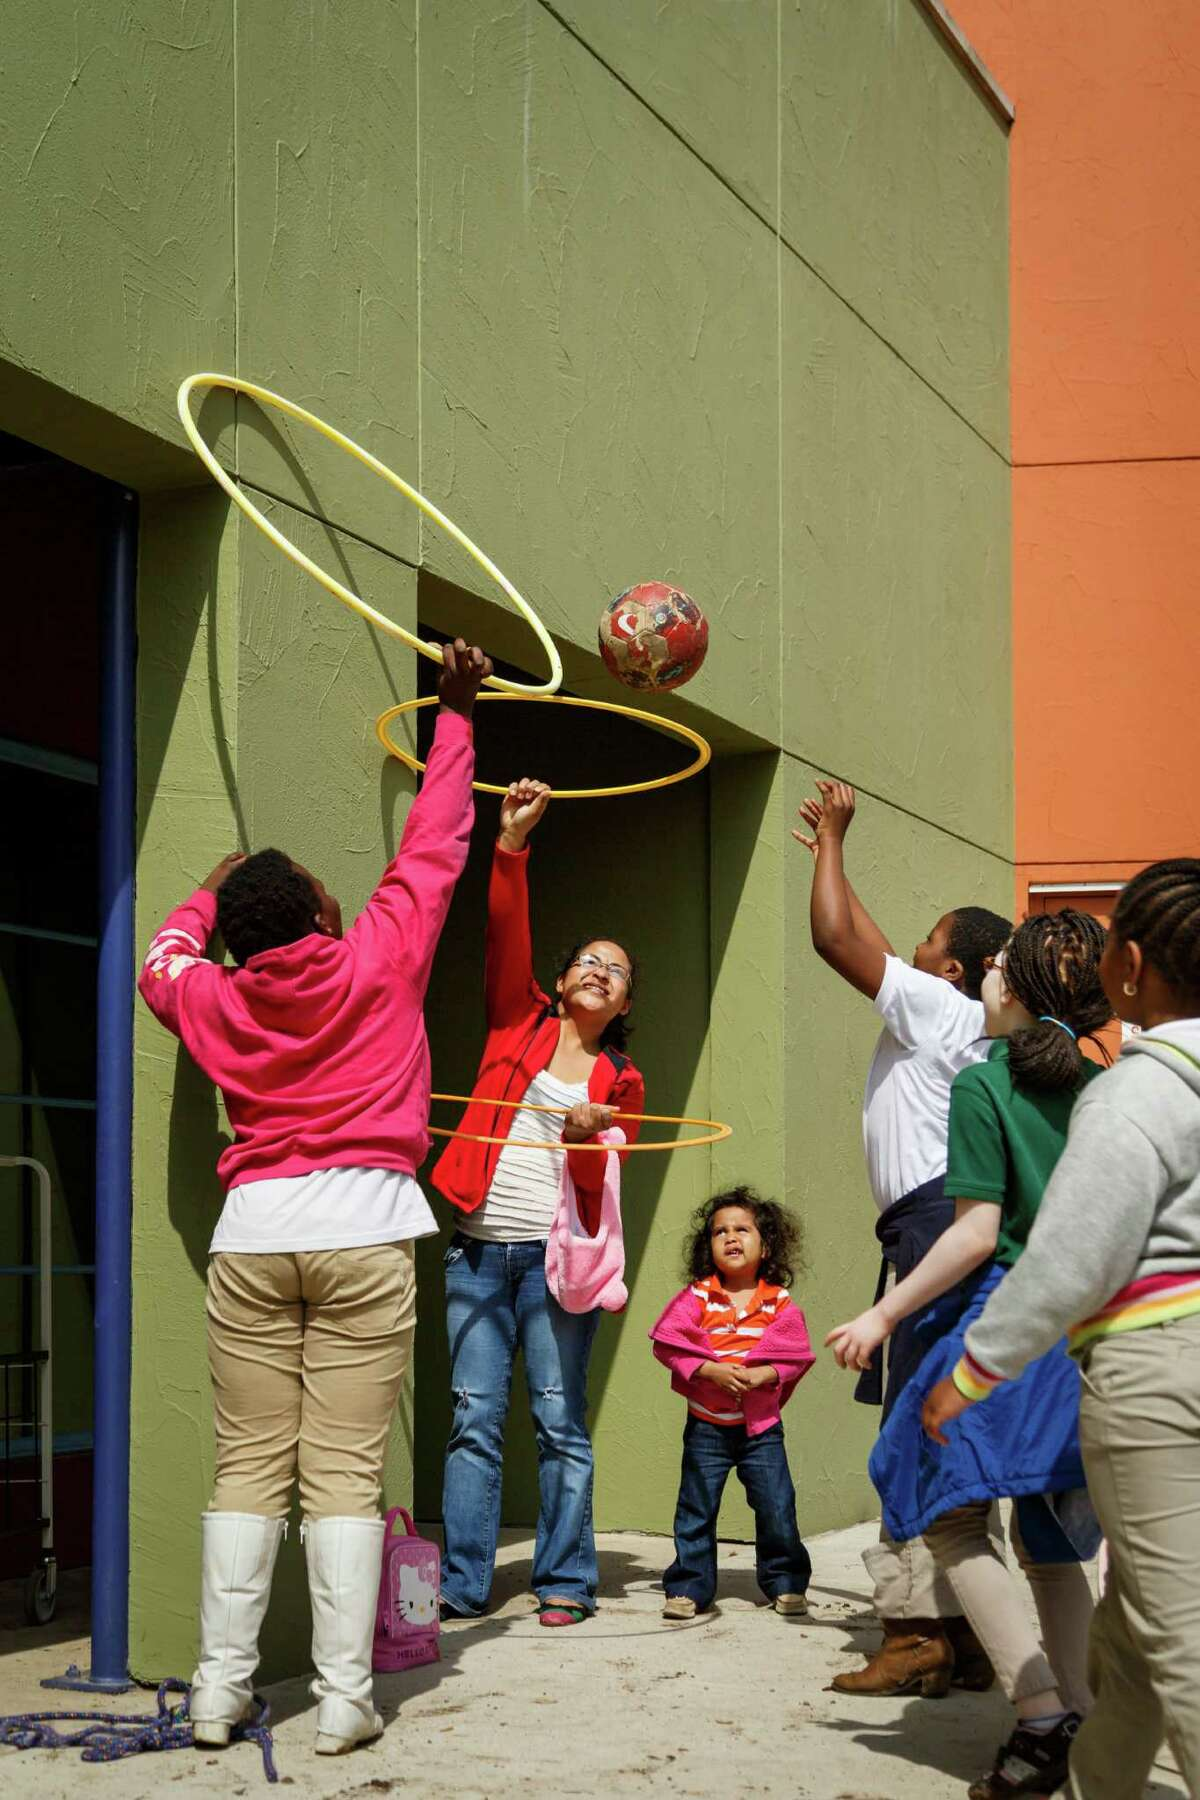 Volunteer Lorena Nolco, center holds up a hoola-hoop as her daughter Carla, 3, looks on at the Baker-Ripley Neighborhood Center, Monday, March 10, 2014, in Houston. The center provides a safe and friendly atmosphere for local residents to learn new things and an opportunity for them to participate in community activities. ( Michael Paulsen / Houston Chronicle )